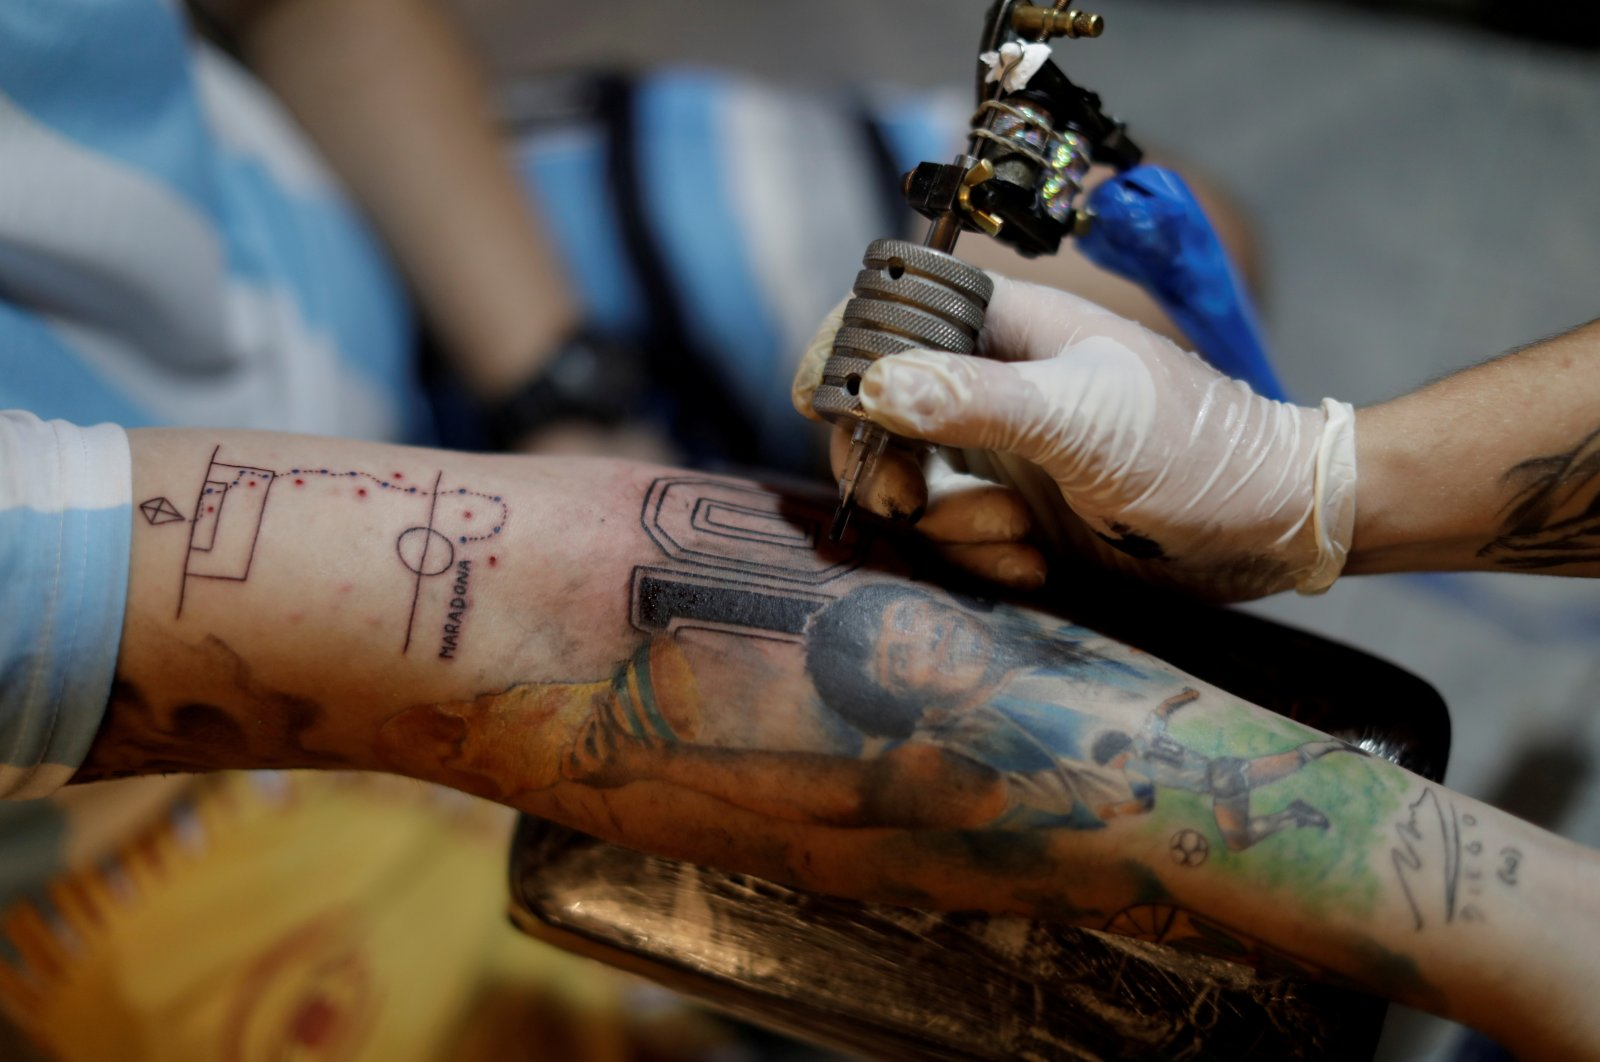 Maximiliano Fernando, a fan, has an image of number 10 related to Maradona's former shirt number tattooed on his arm, in Buenos Aires, Argentina, Nov. 28, 2020. (REUTERS PHOTO)